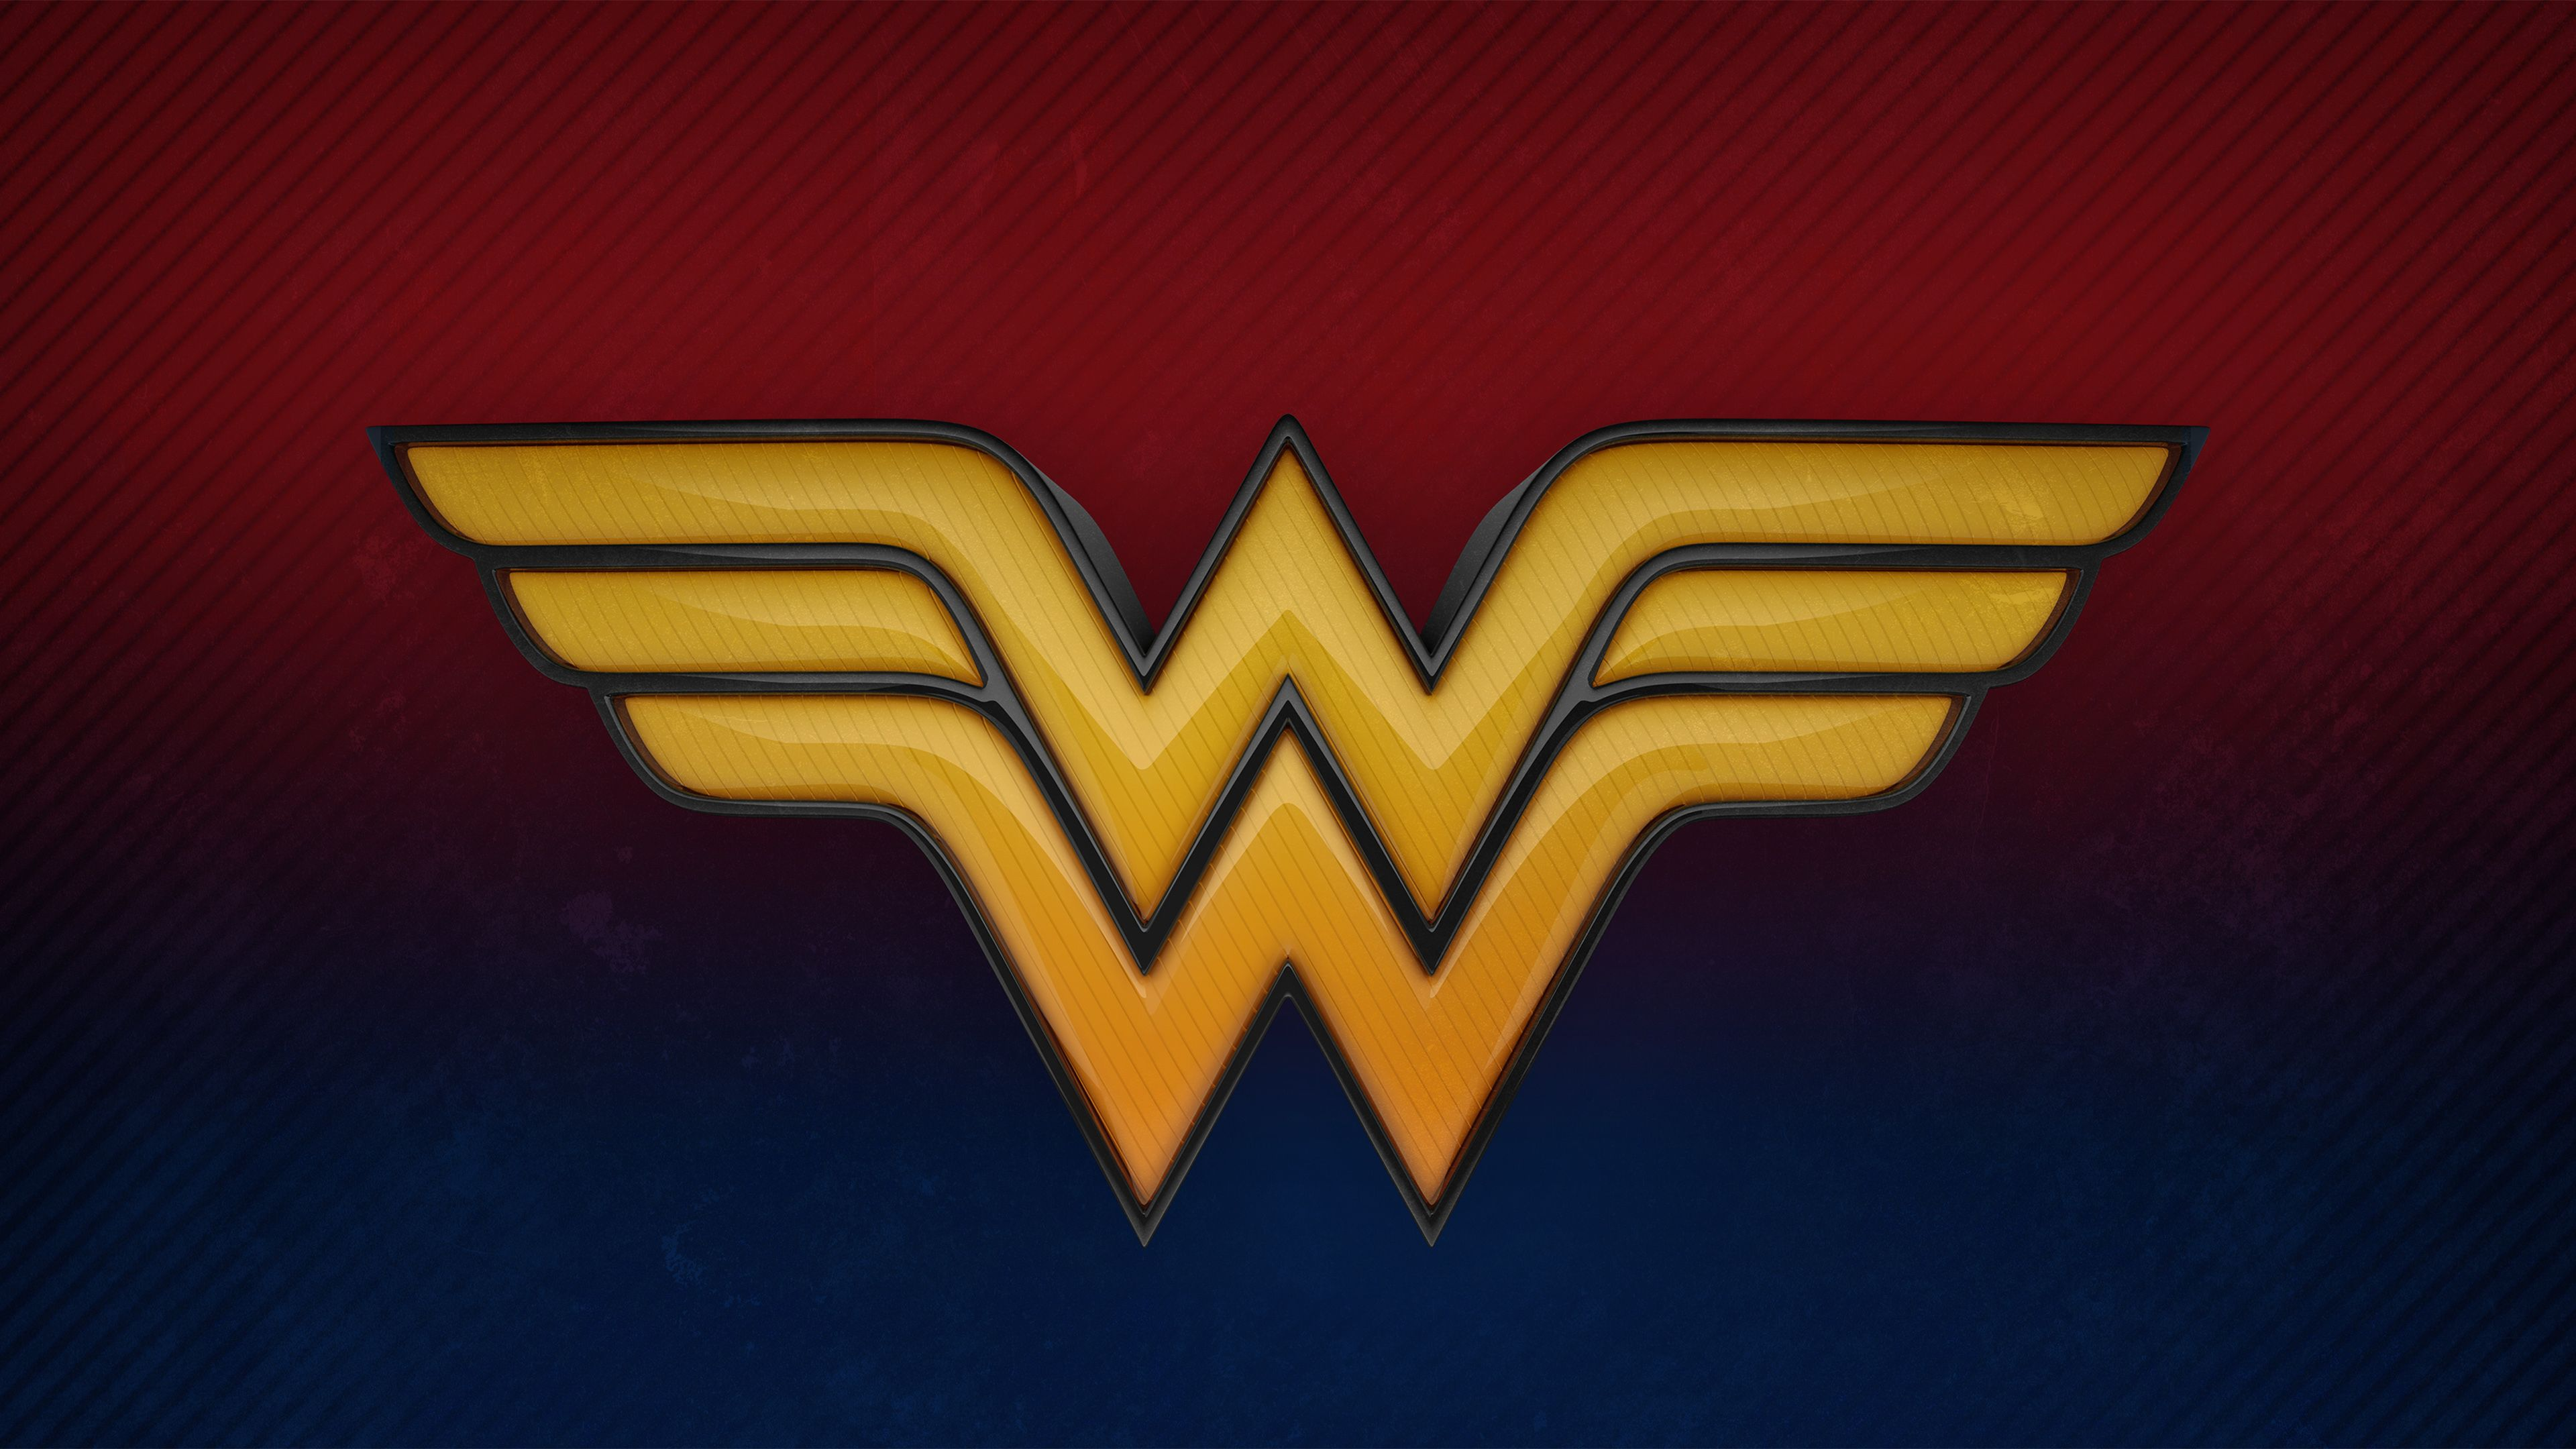 Wonder Woman 3d Logo 4k Wonder Woman Wallpapers Superheroes Wallpapers Logo Wallpapers Hd Wallpapers 4k Wallpap 3d Logo 3d Wallpaper Superhero Wonder Woman